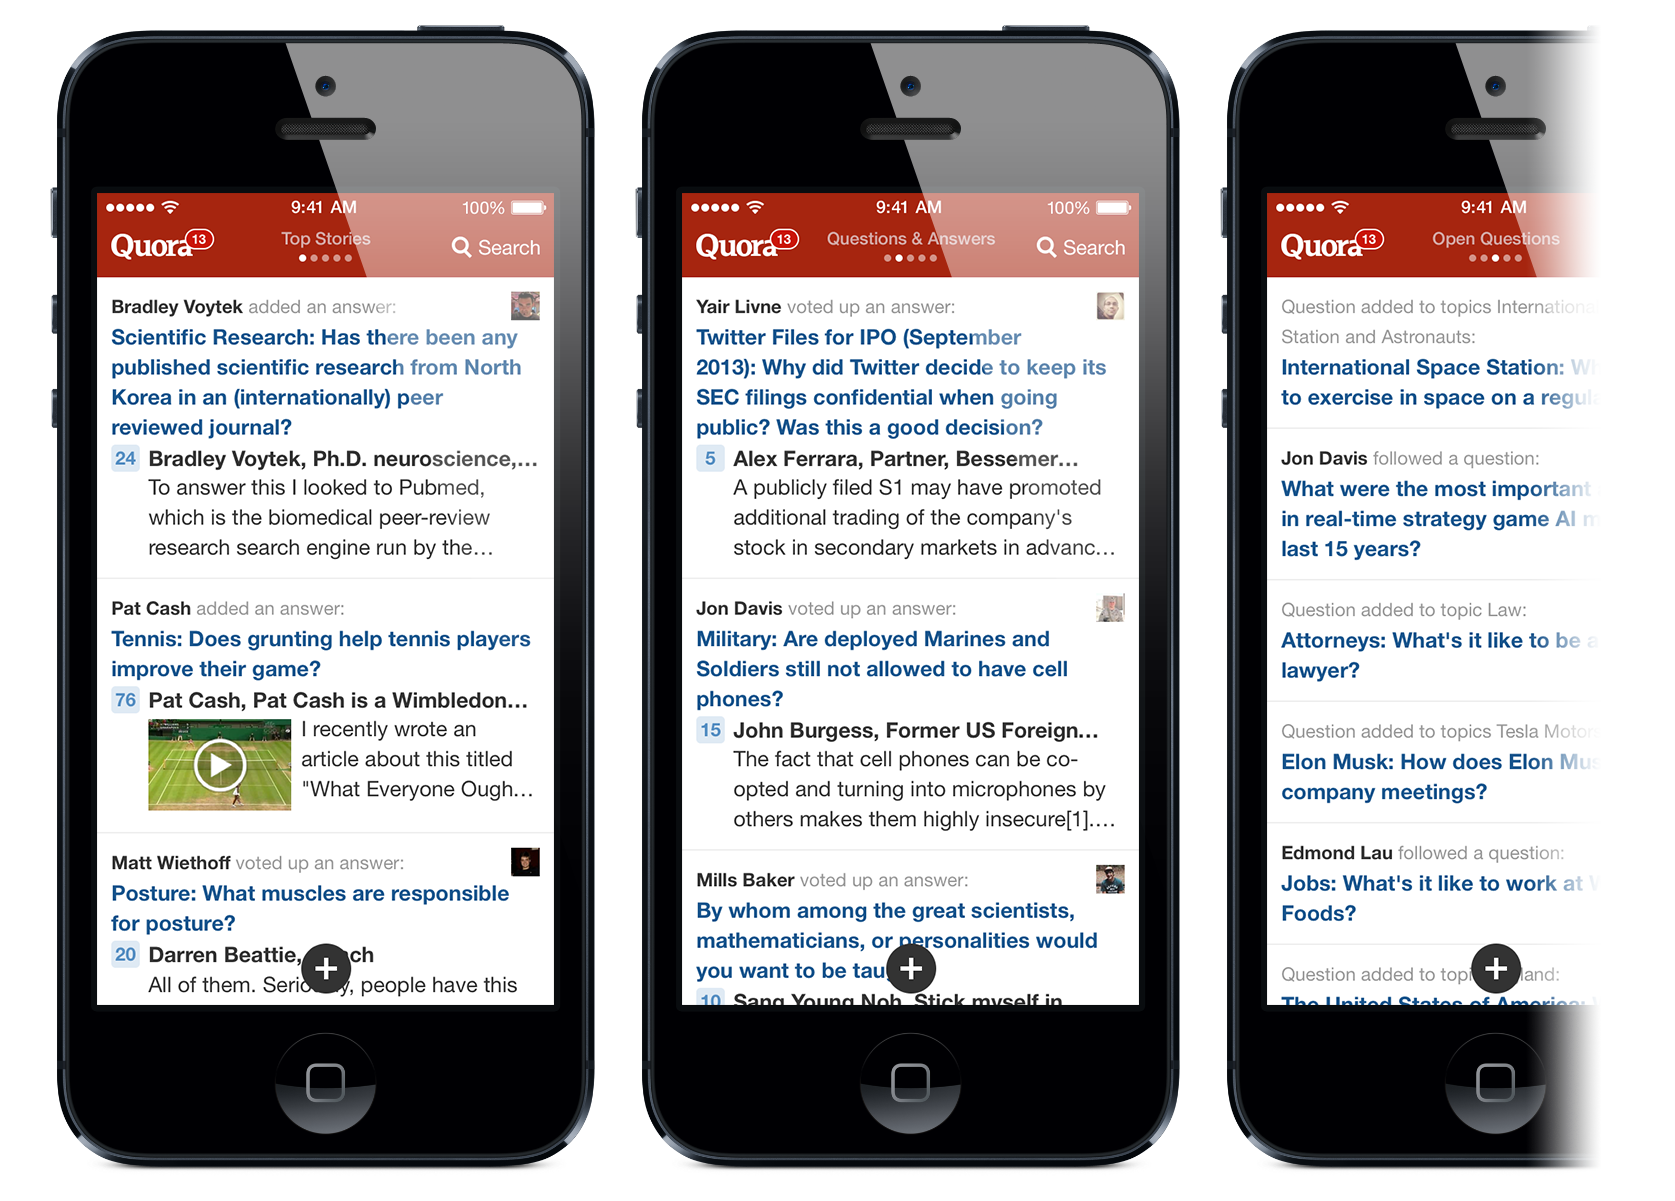 Quora Launches iOS 7 App, Reveals Plans for iPad Version This Year